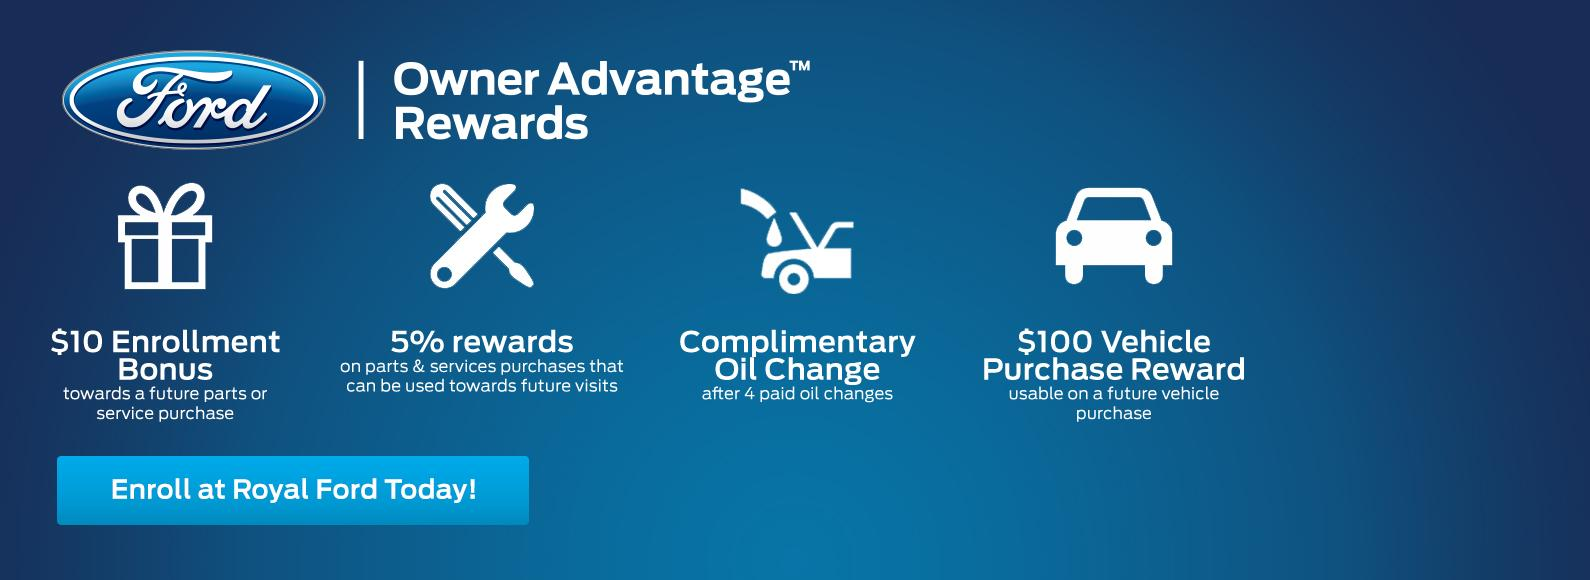 Owner Advantage Rewards